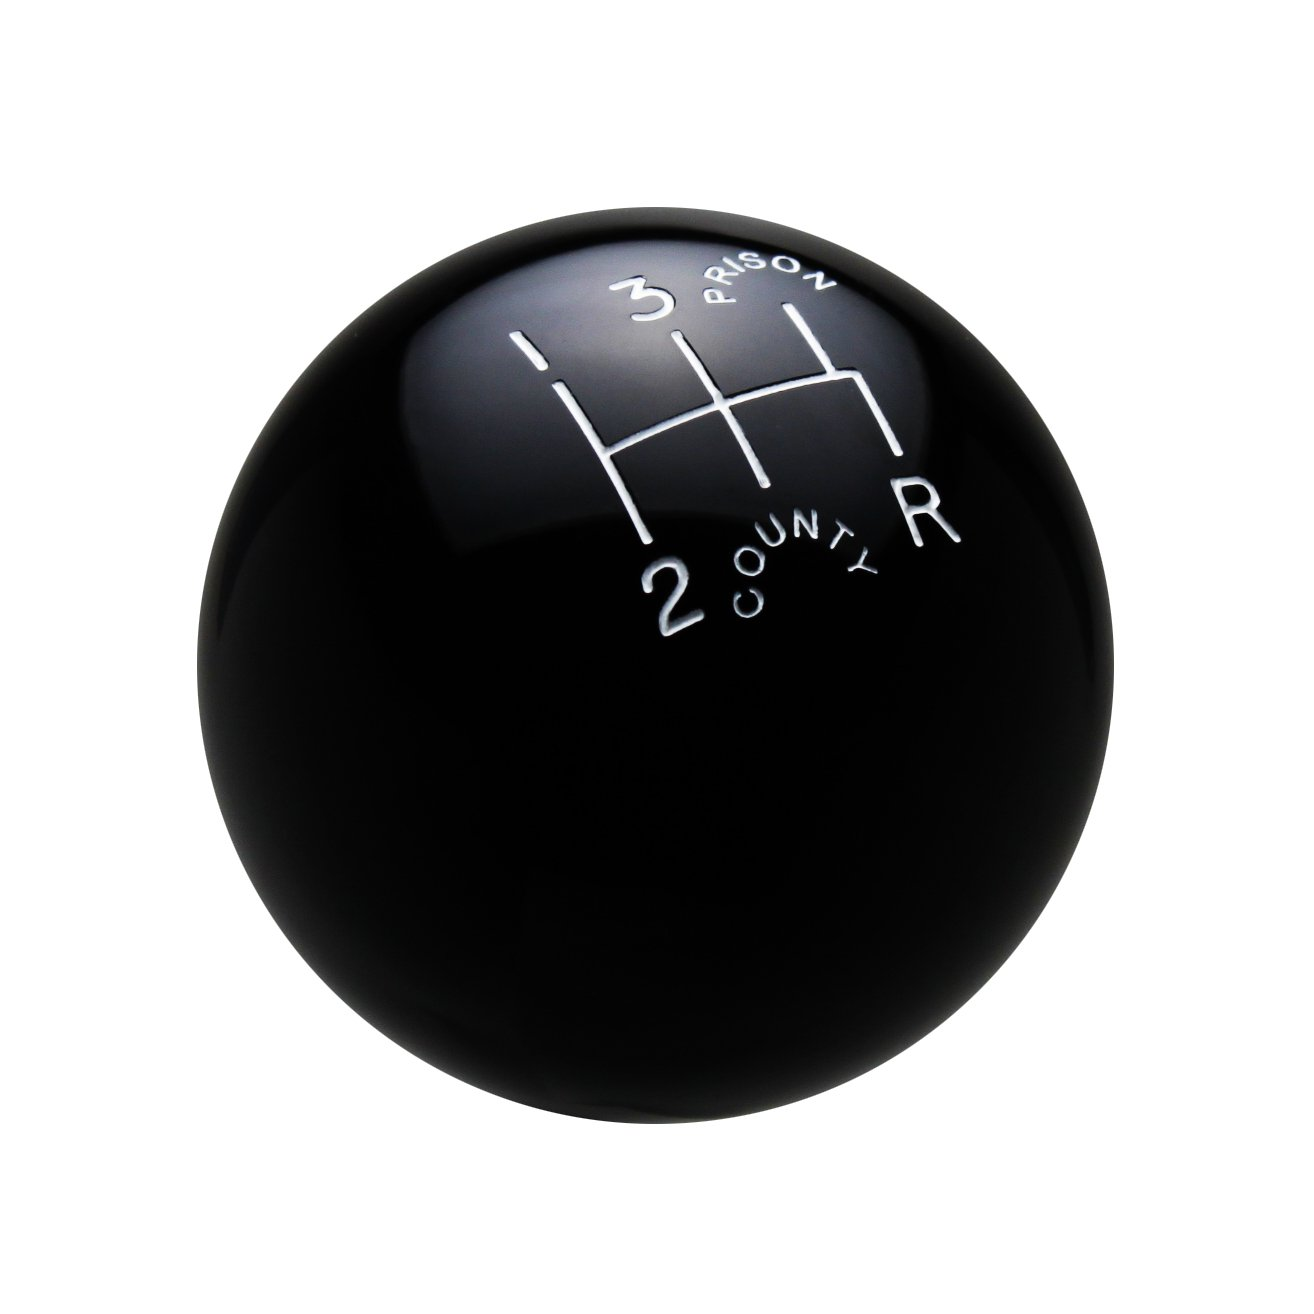 Speed Dawg SK501-CPW-5RDR Traditional Series Black/White 'County Prison' 5-Speed Reverse Lower Right Shift Knob